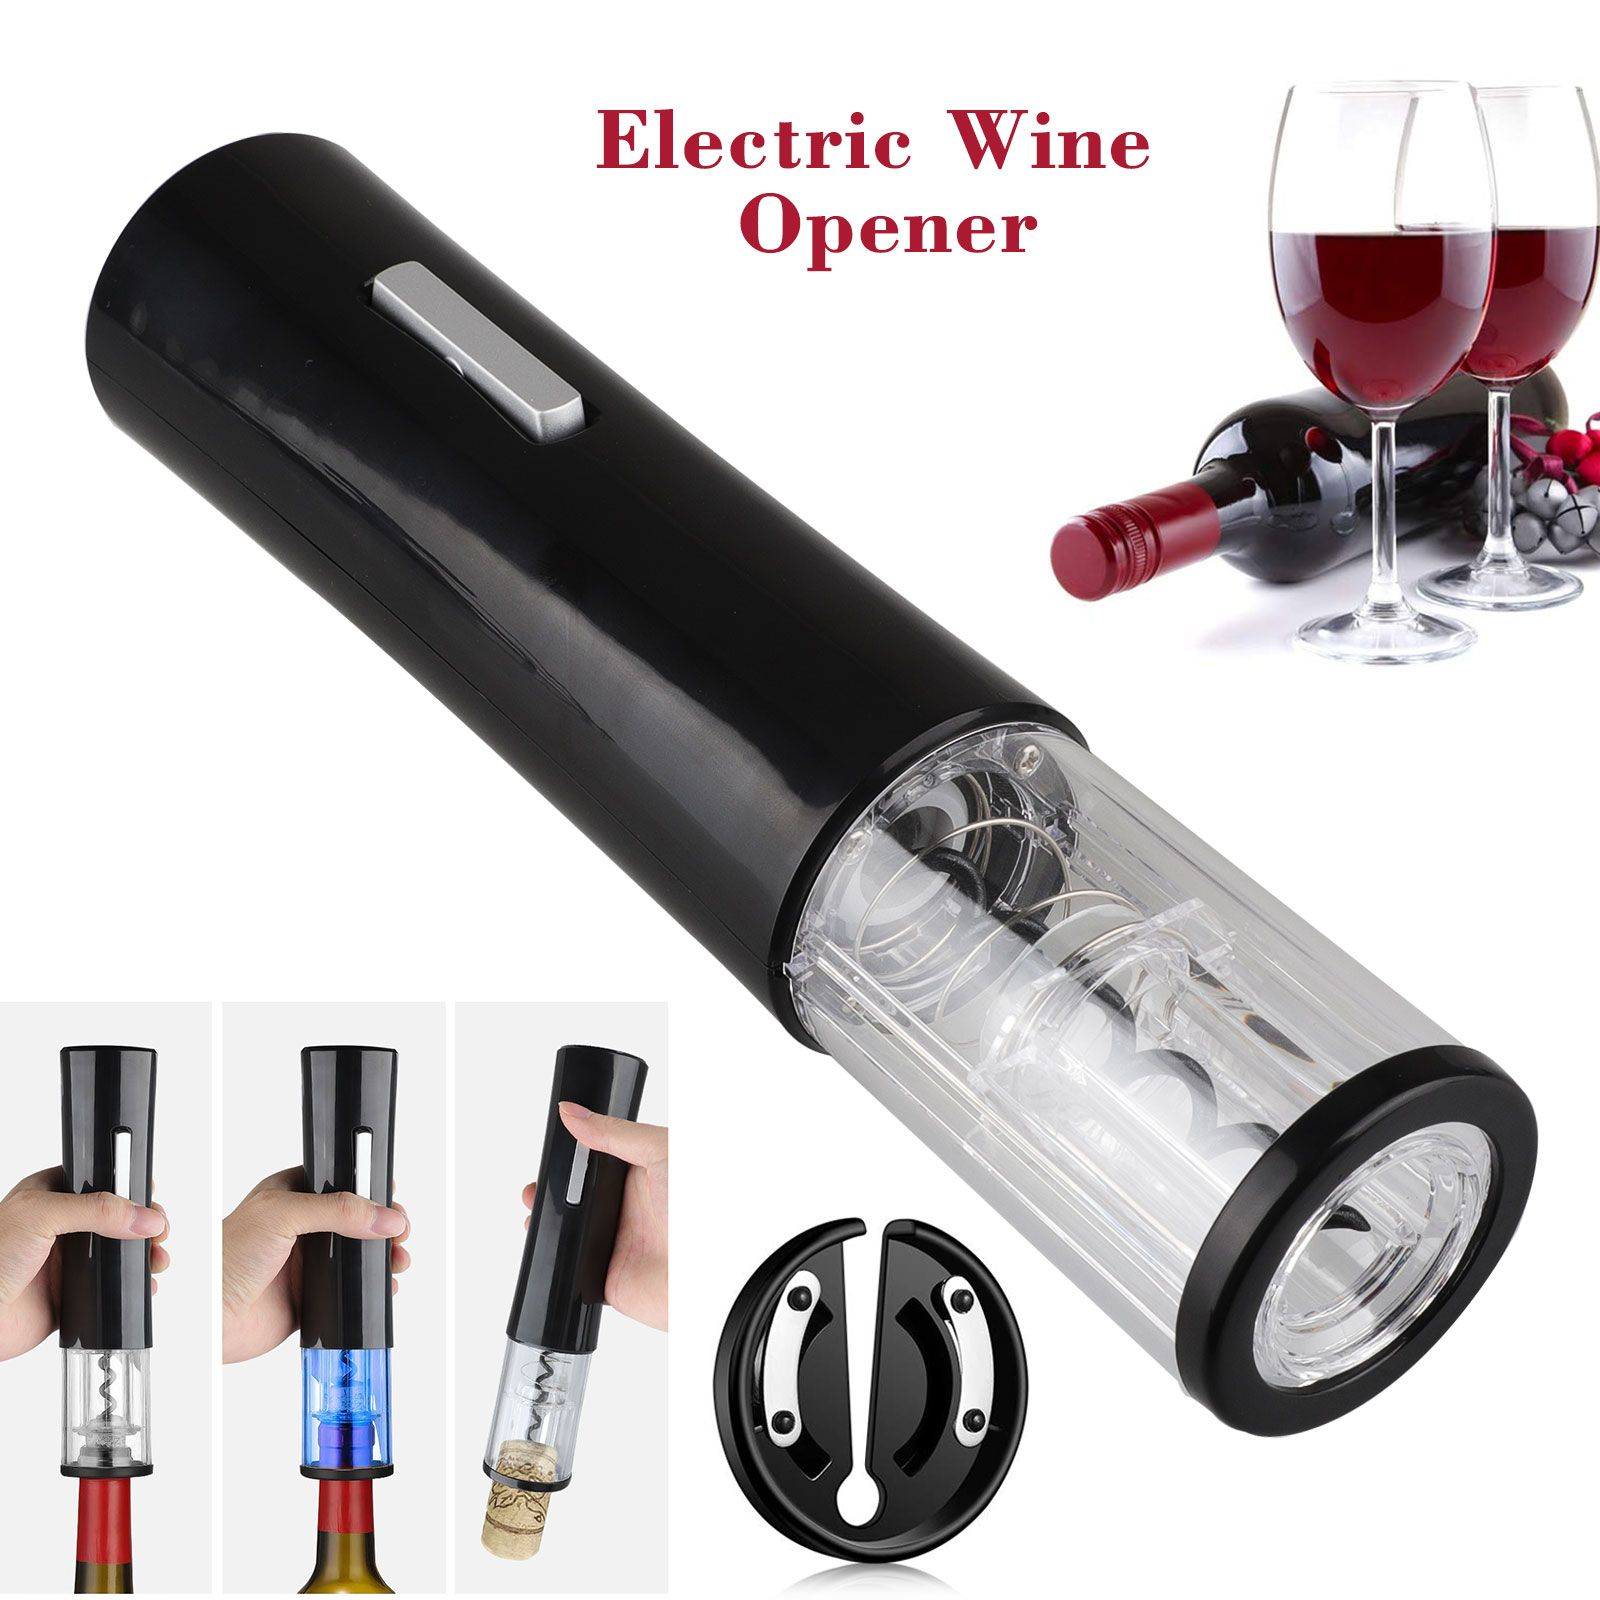 Rabbit Rechargeable Electric Wine Opener Set Stainless Steel wt Foil Cutter Cork